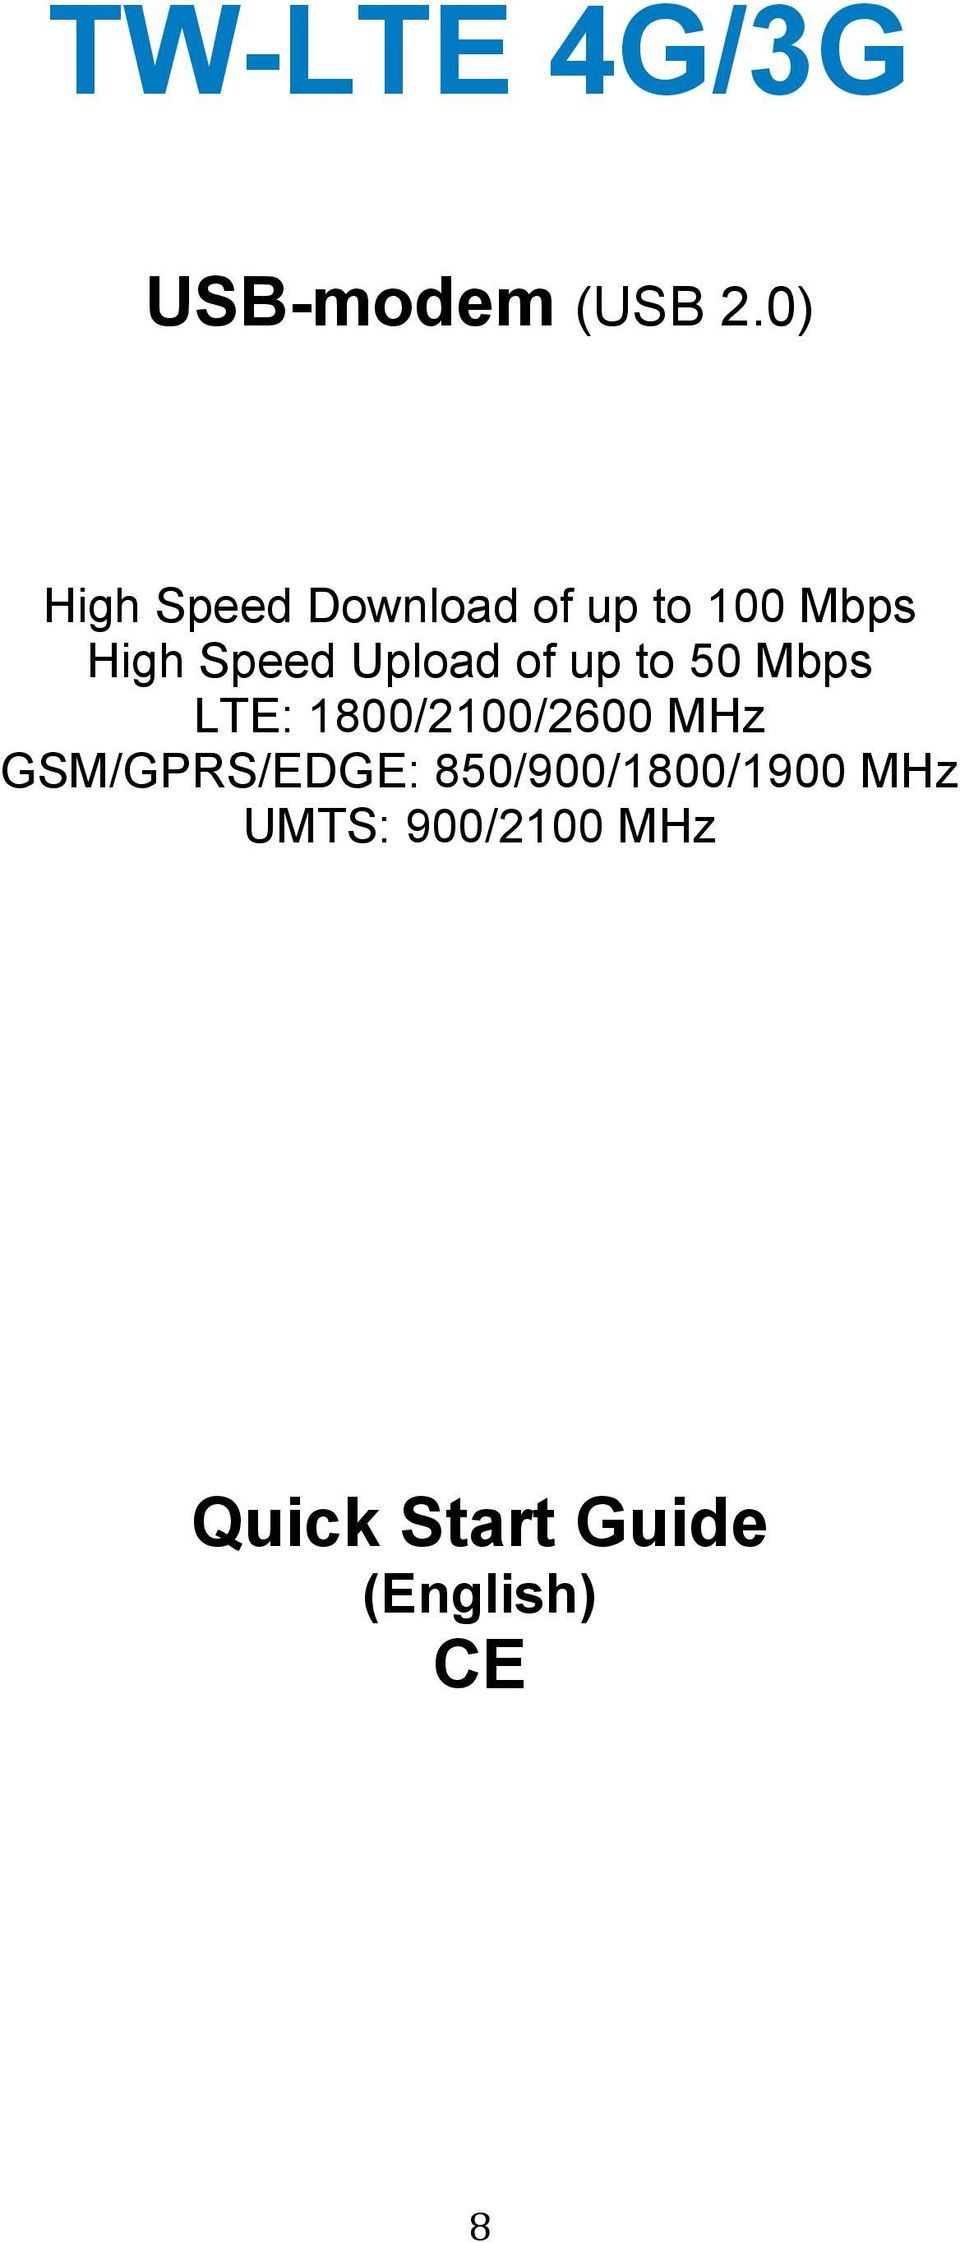 Upload of up to 50 Mbps LTE: 1800/2100/2600 MHz